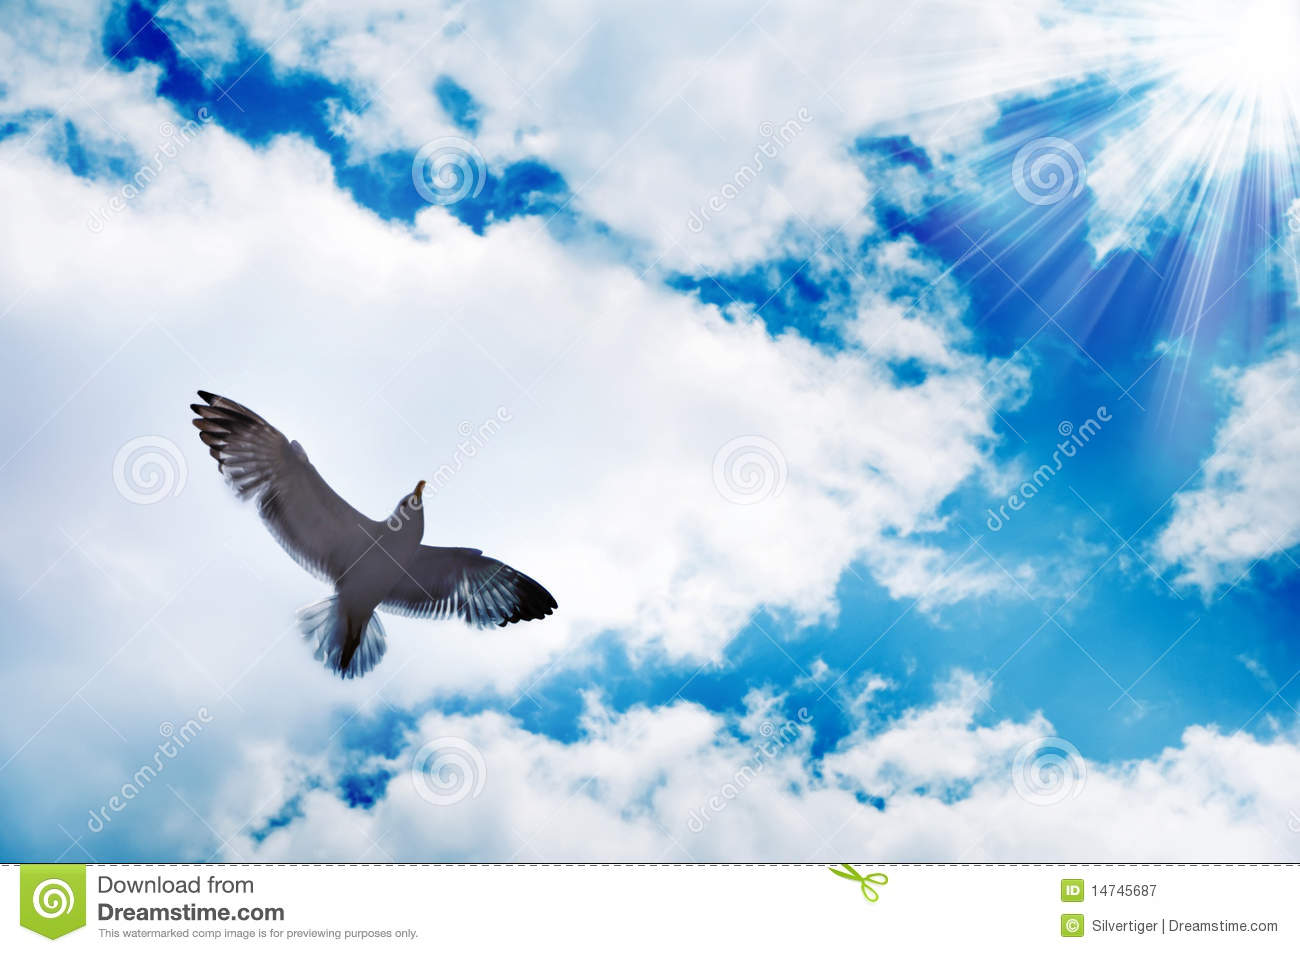 Flying Birds Free Stock Photos Download 3 416 Free Stock: Flying Bird And Blue Sky Stock Image. Image Of Heaven